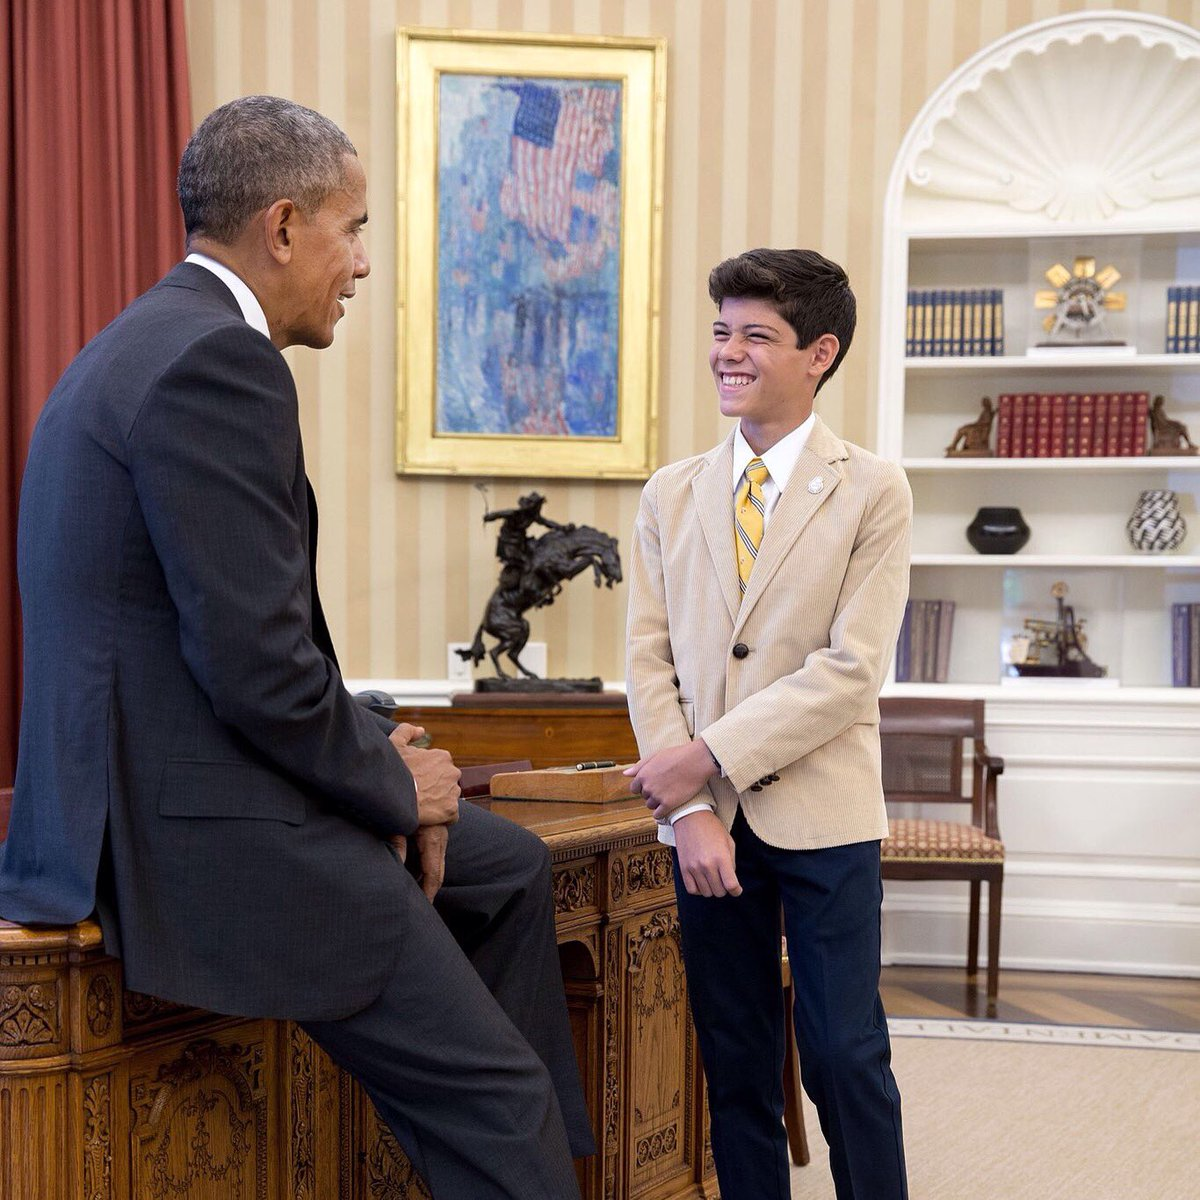 Our National Ambassador meets Pres. Obama at the White House – visit highlights Zika